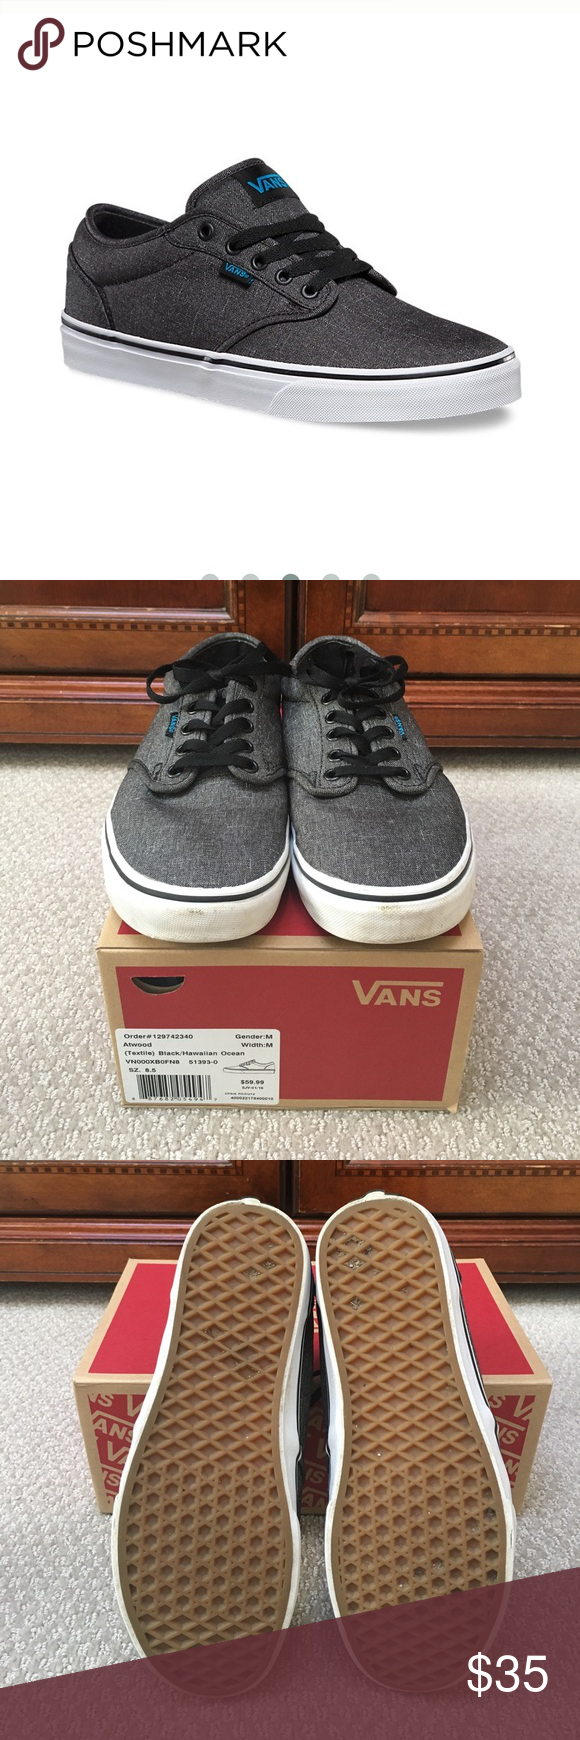 Vans Atwood in Textile Black Hawaiian Ocean Vans Atwood in Textile Black Hawaiian  Ocean. In very good pre-owned condition. From a clean  79fa2d658